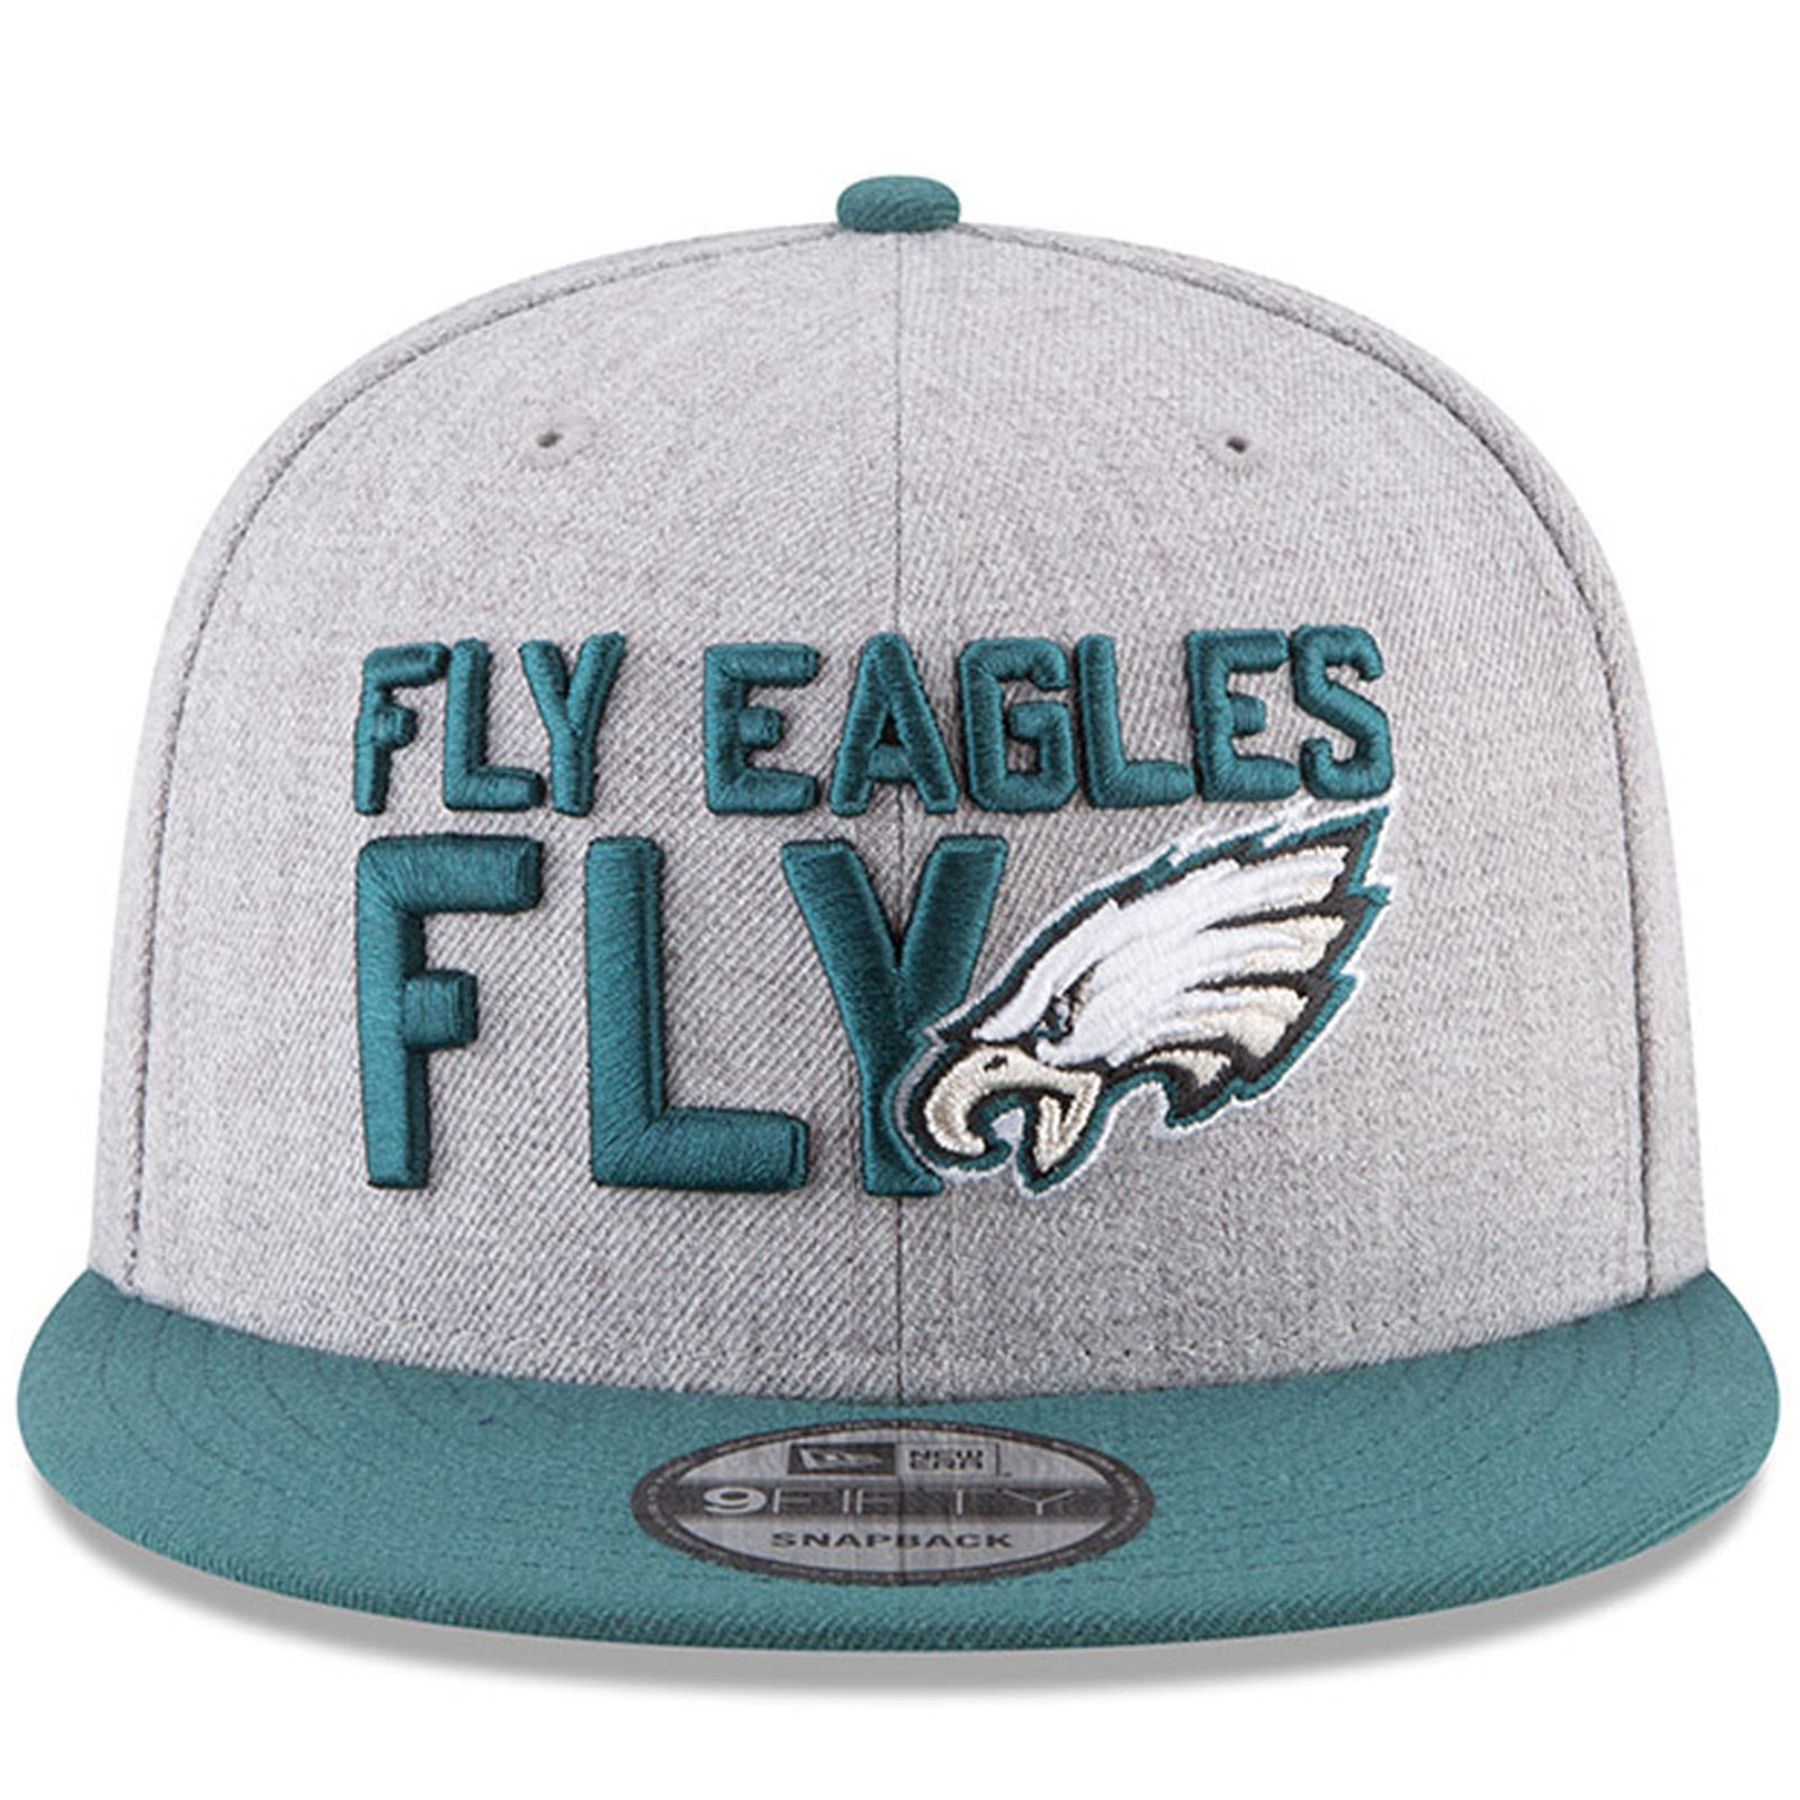 2a52c835 Let's go birds baby! All new draft hats now live on the site ...